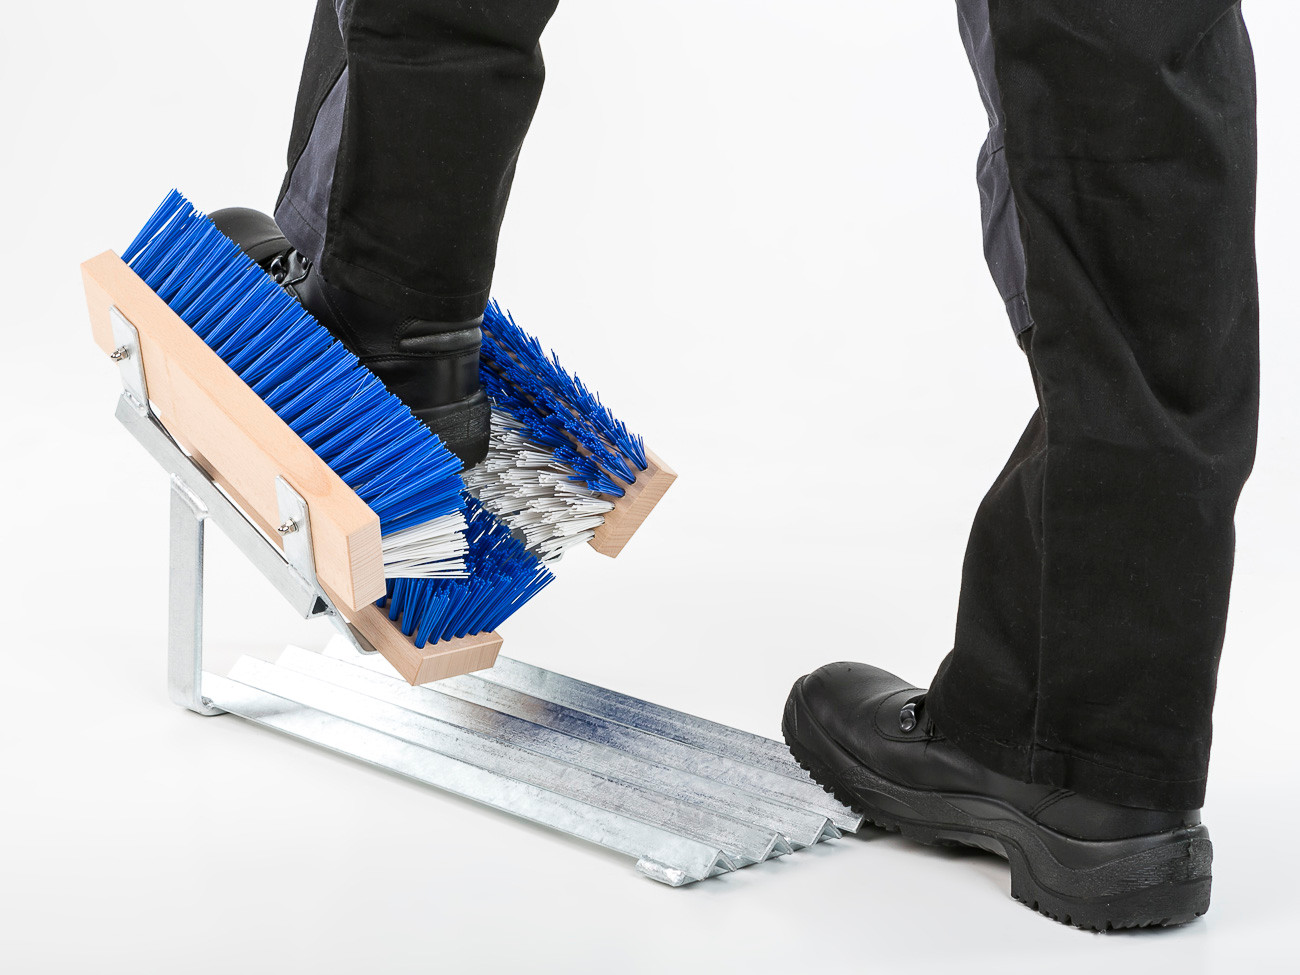 Cleaning devices for shoes and boots.